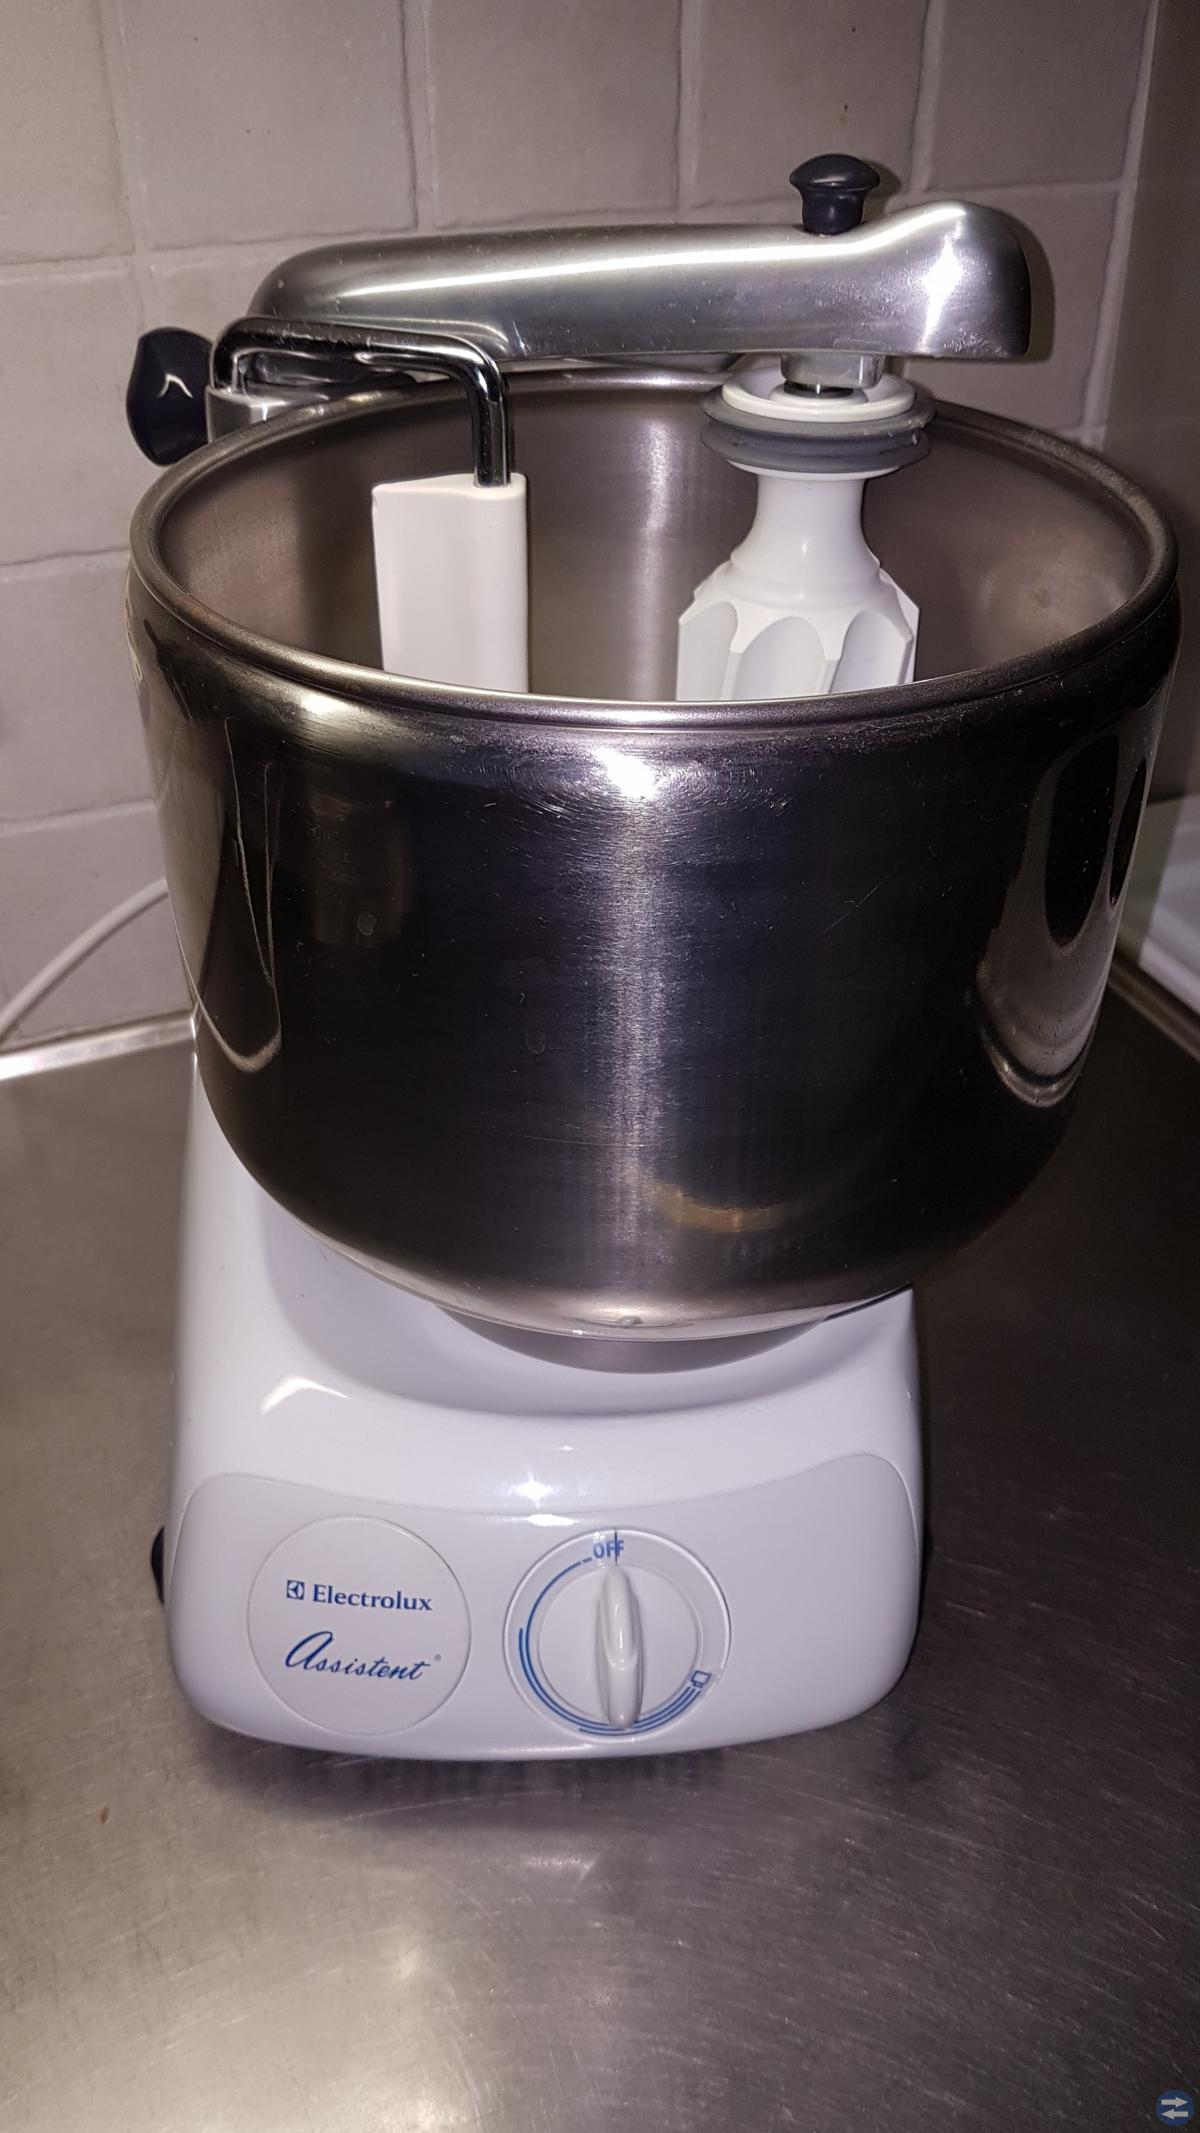 Electrolux Assistent Nr 24